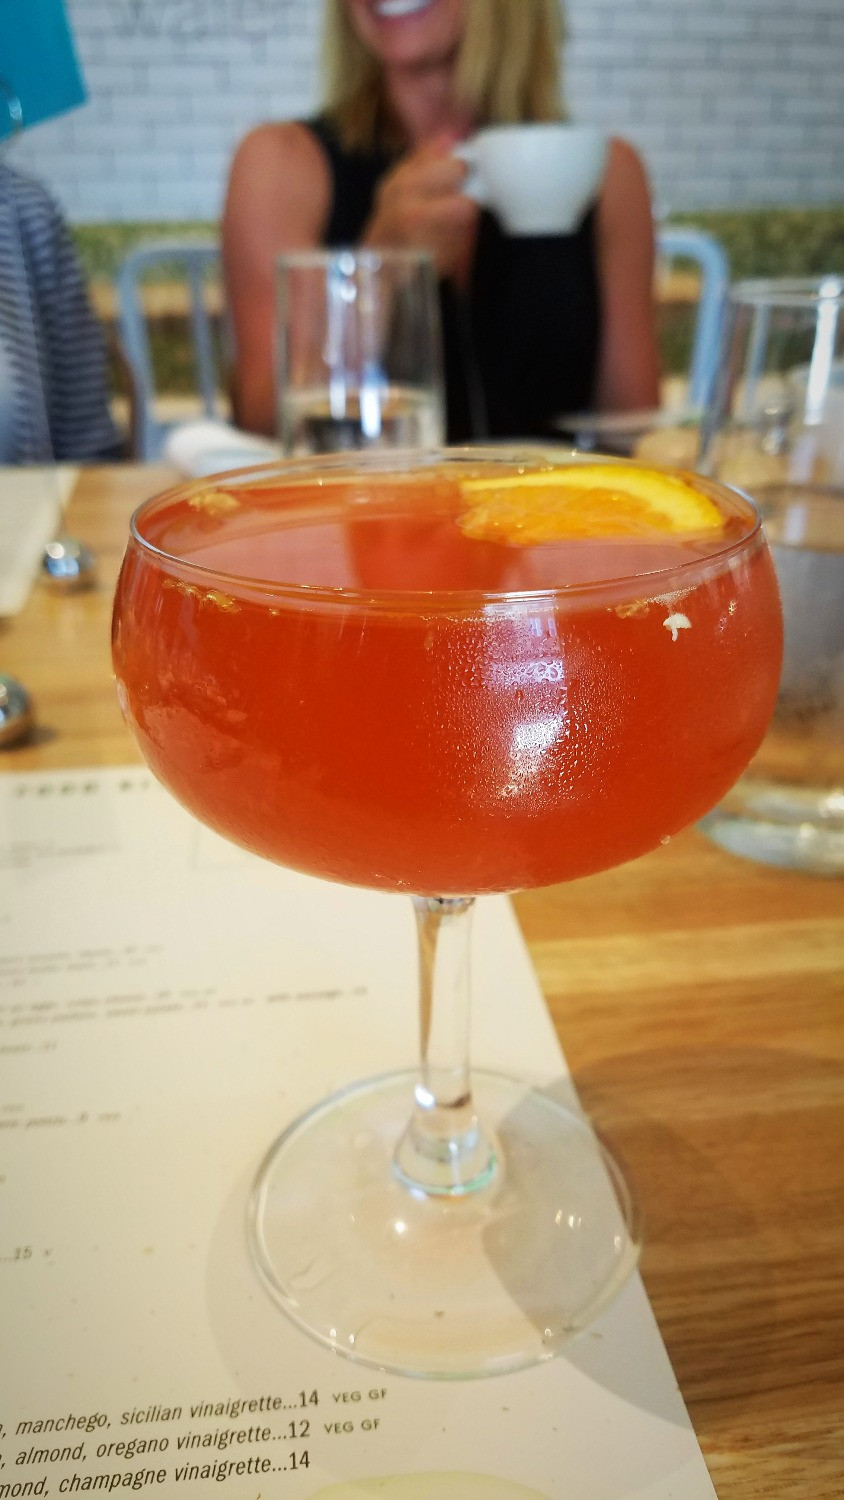 The Cranberry & Pomegranate Mimosa is a pretty looking drink!